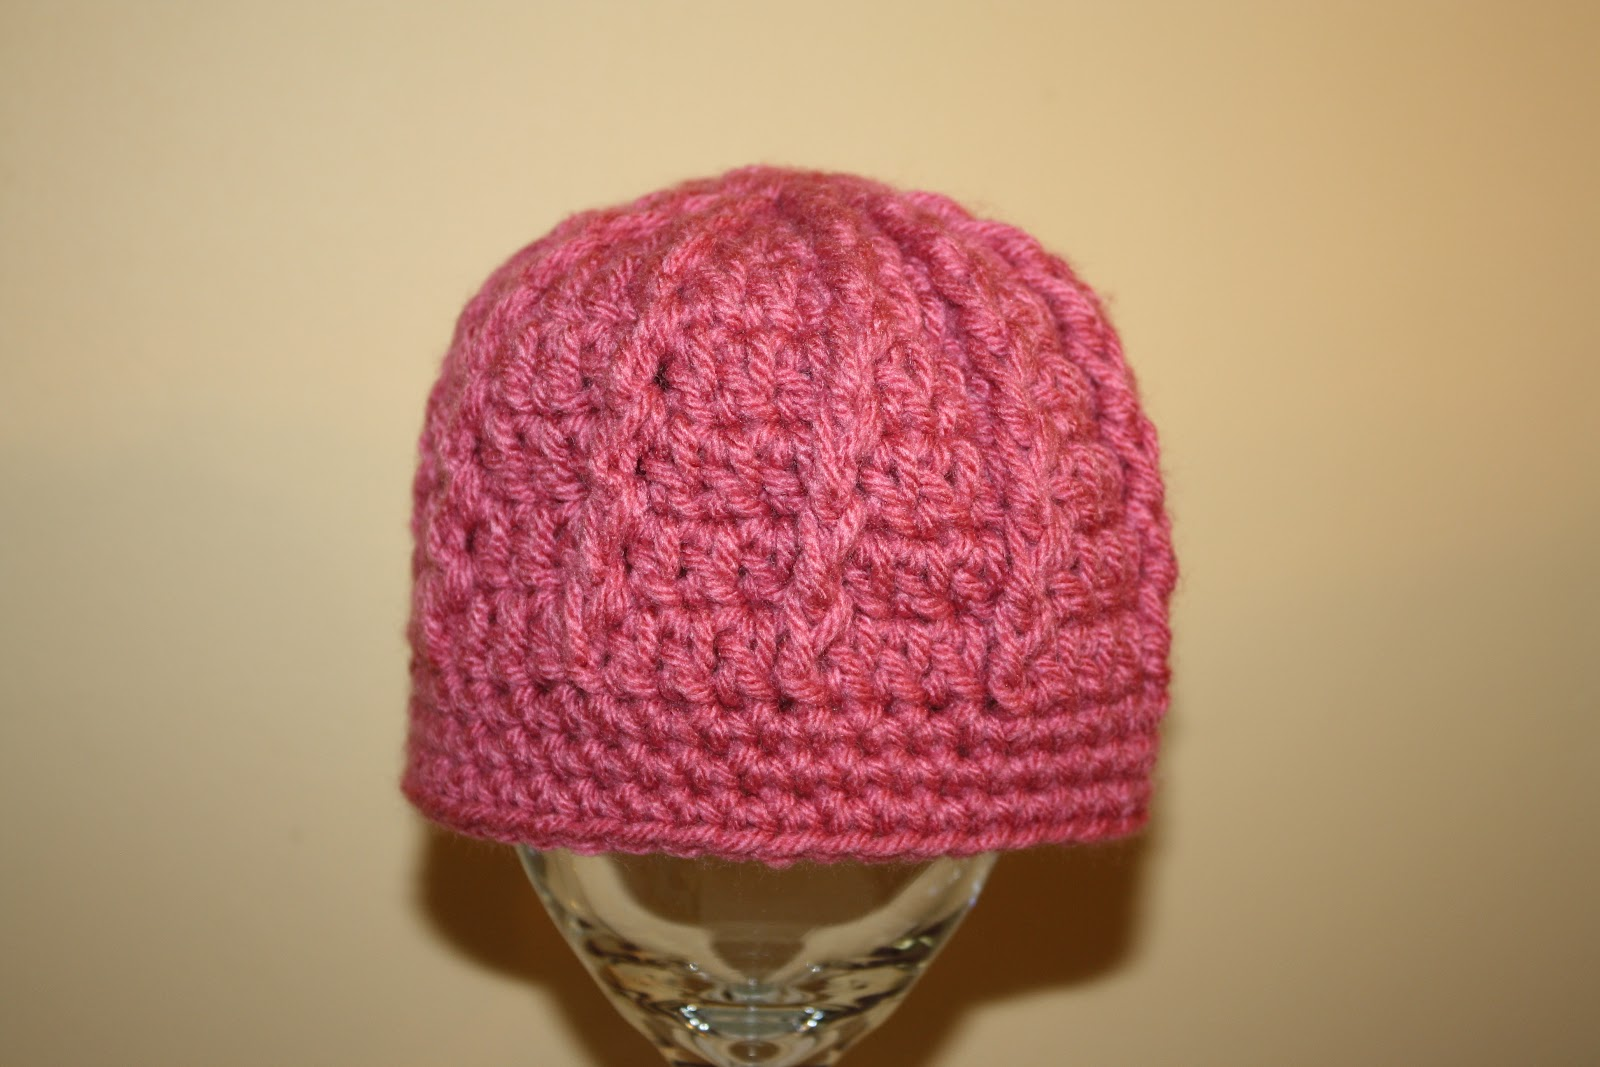 Crochet Beanie Pattern Ribbed : You Drive Me CrAfTy: RIBBED CROCHET BEANIE